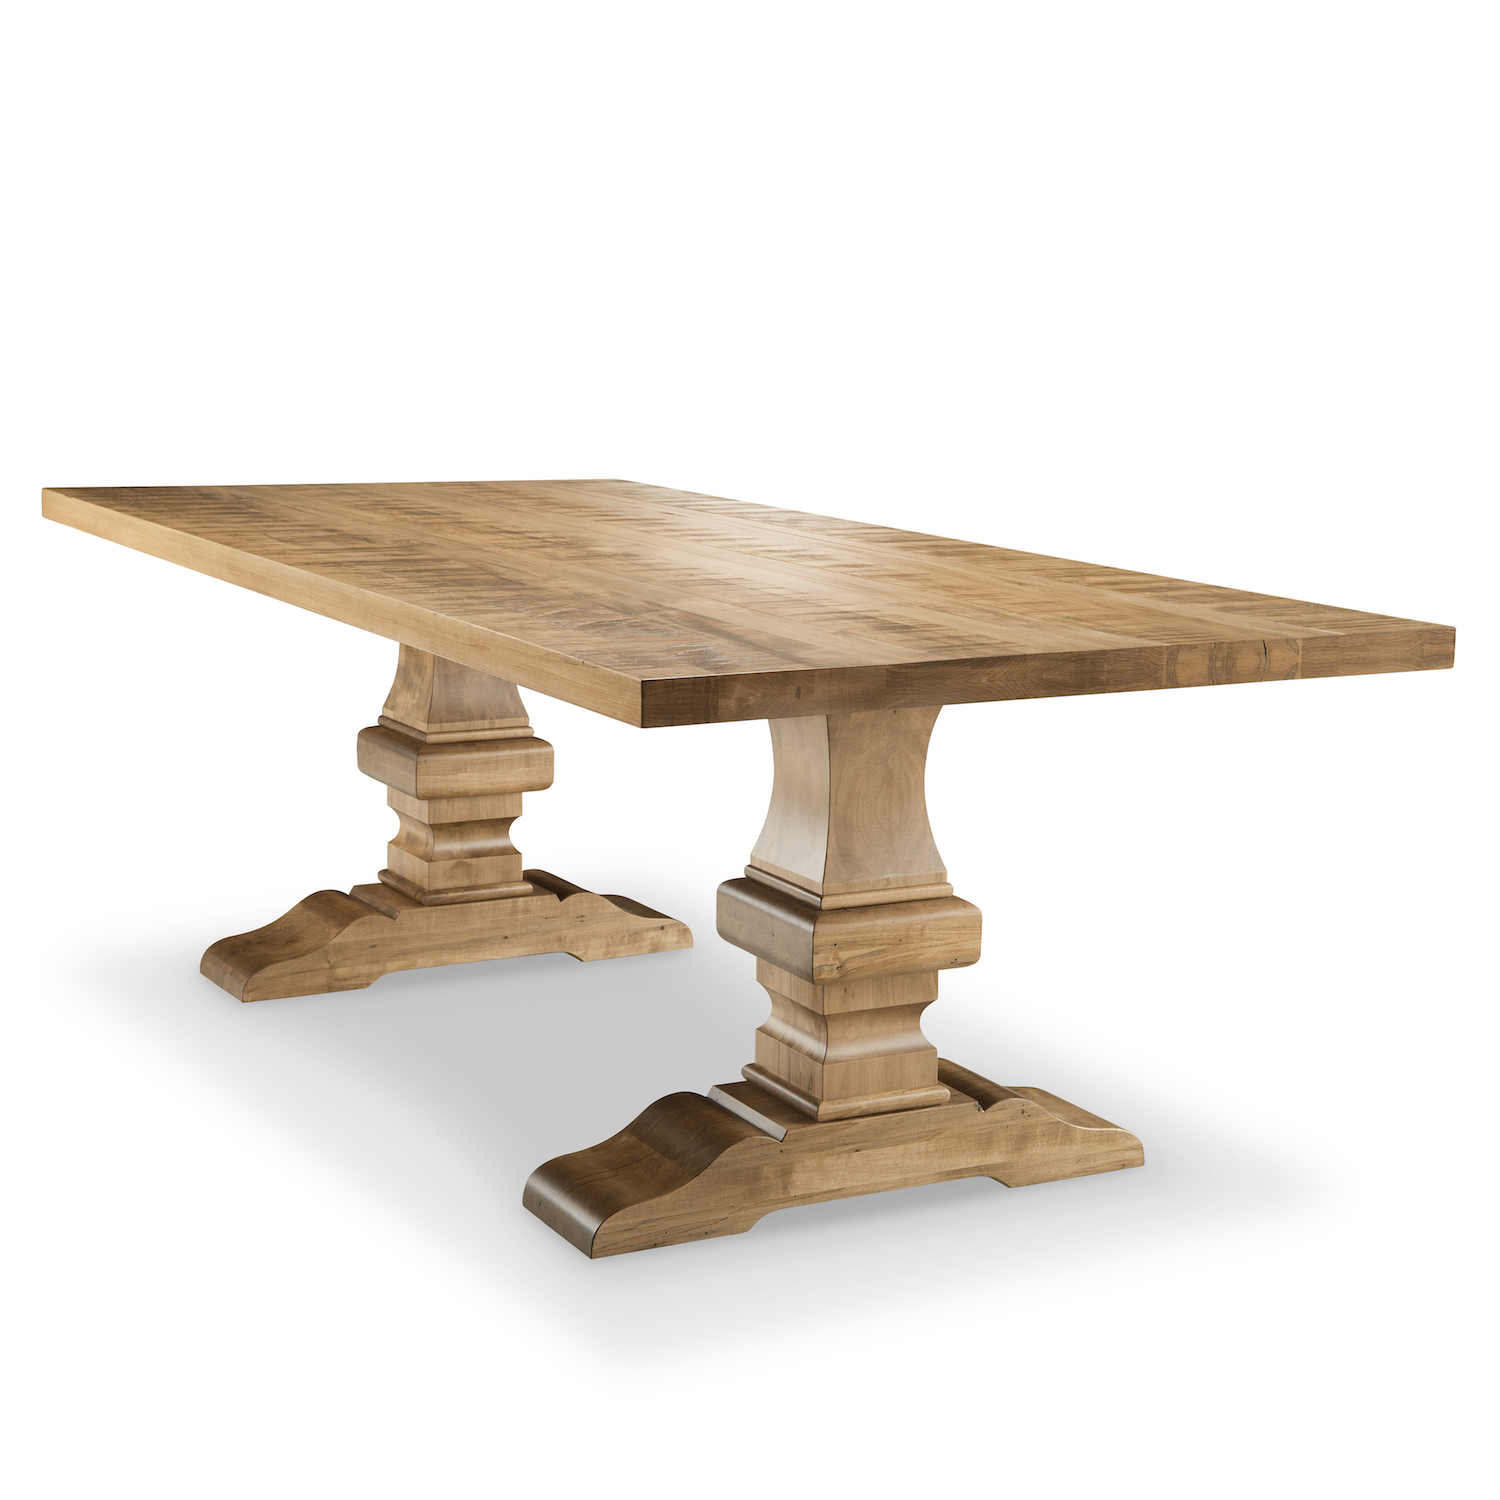 Thornbury_Table_Angled-2-1-1.jpg